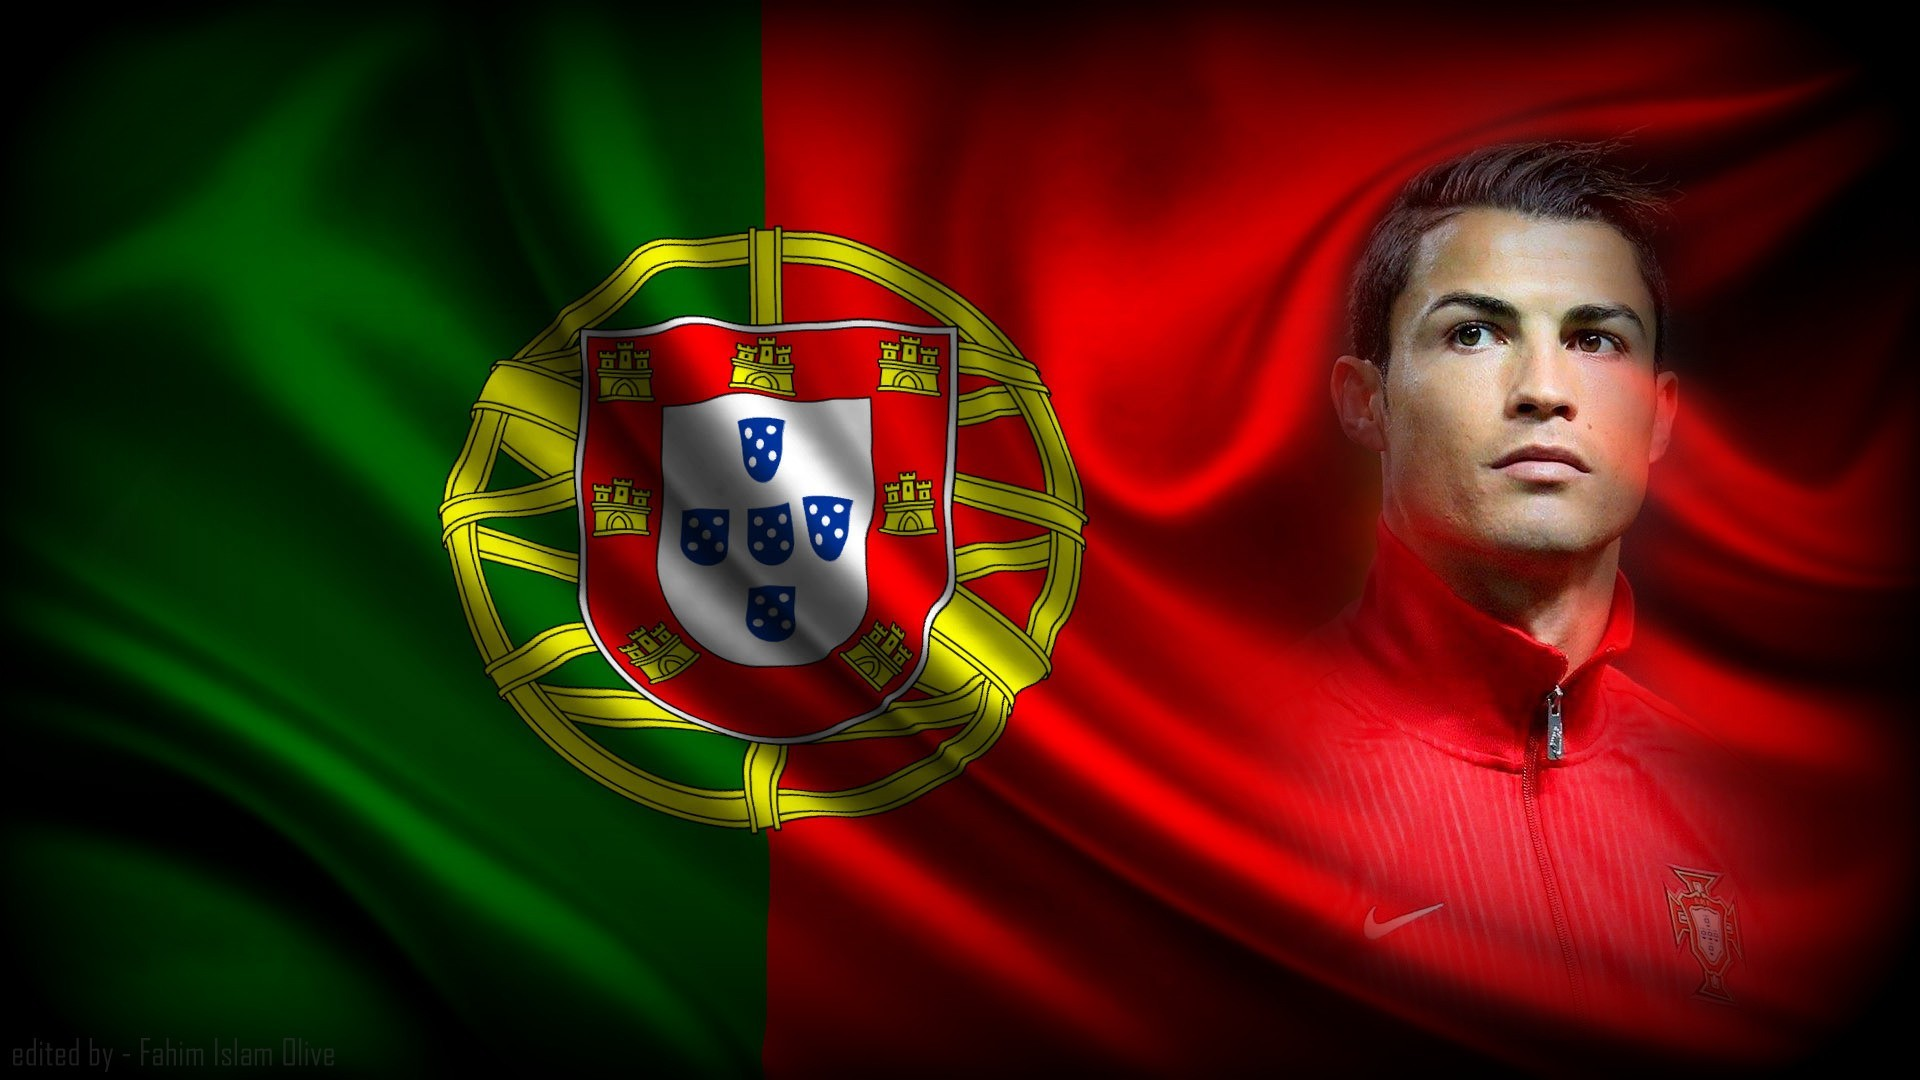 1920x1080 sports cristiano ronaldo flag soccer portugal football cool wallpapers  Wallpaper HD